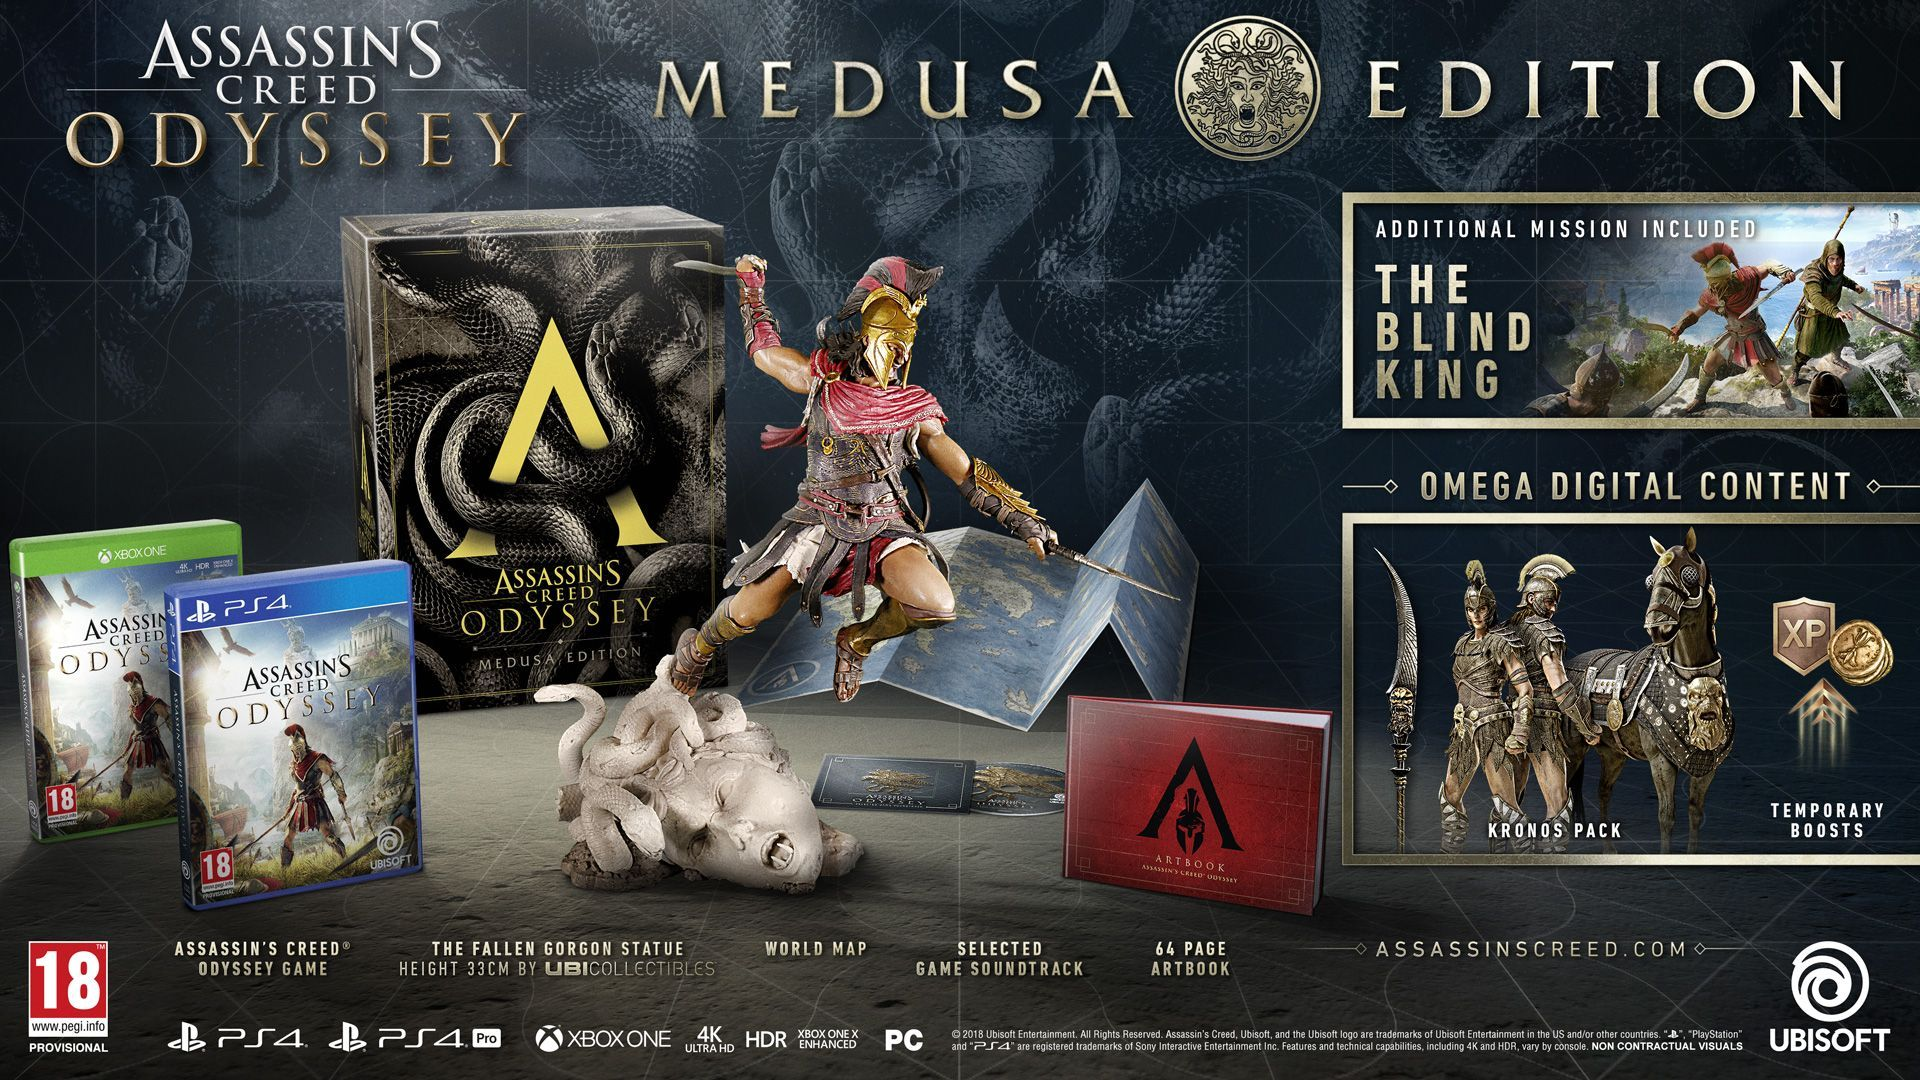 Assassin's Creed Odyssey Medusa Edition (Xbox One) - 3